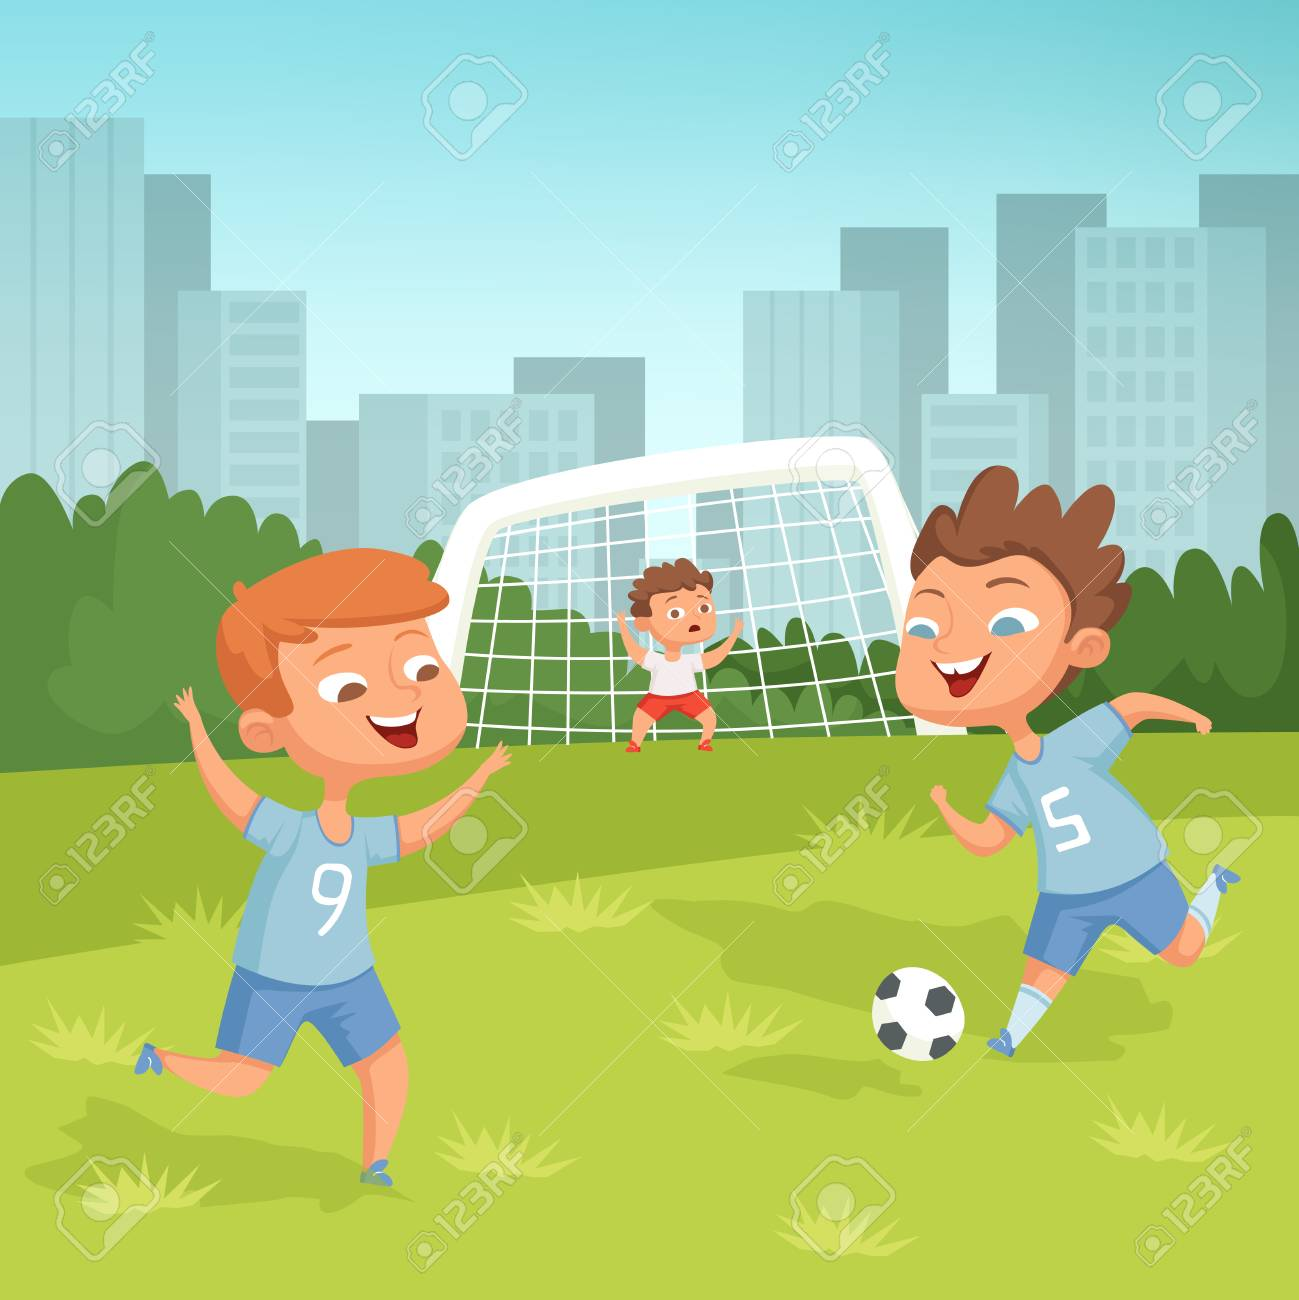 Active children playing football outdoor - 103995447